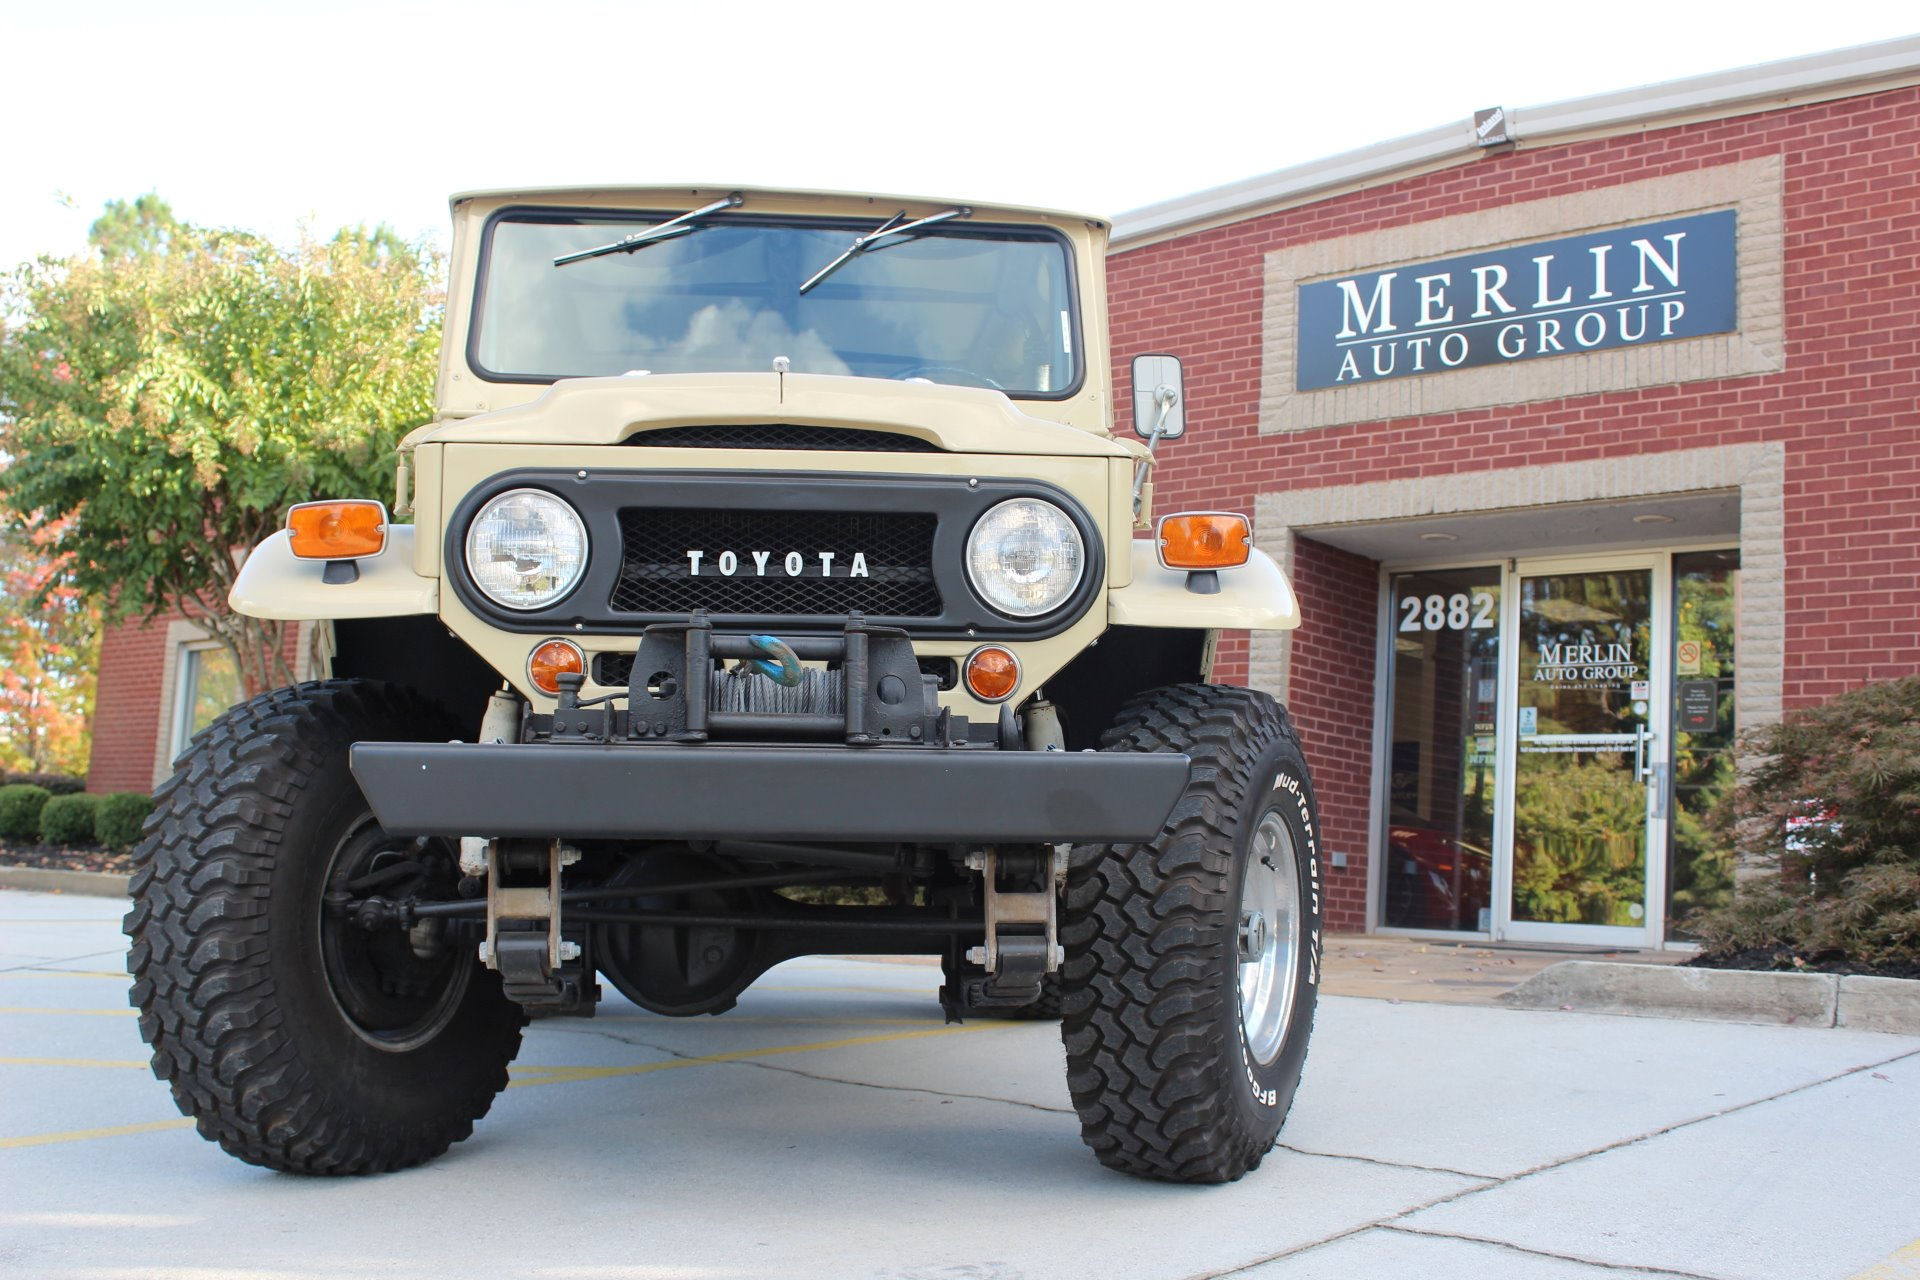 Bj40 Toyota 1983 Manual More Electric Fan Wiring Help Incl Diagram Ih8mud Forum Array Used 1969 Fj40 Beige For Sale Photos Rh Topclassiccarsforsale Com